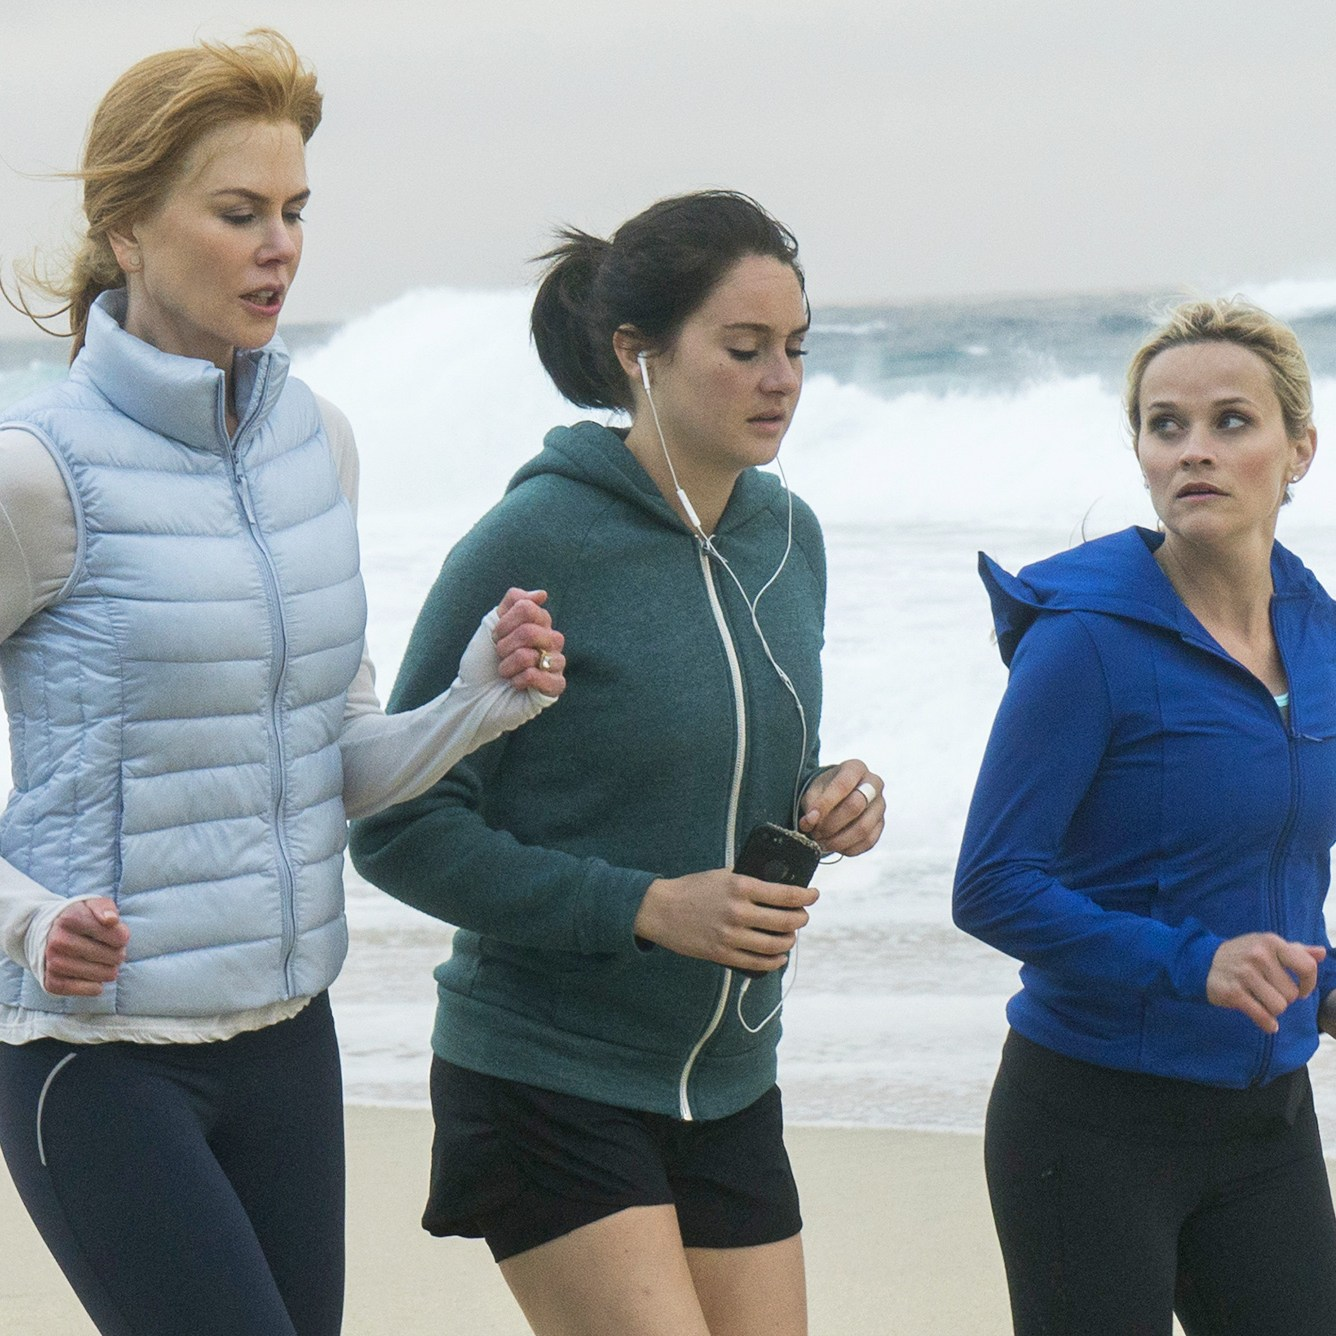 Big Little Lies, HBO, Nicole Kidman, Shailene Woodley, Reese Witherspoon, Golden Globes